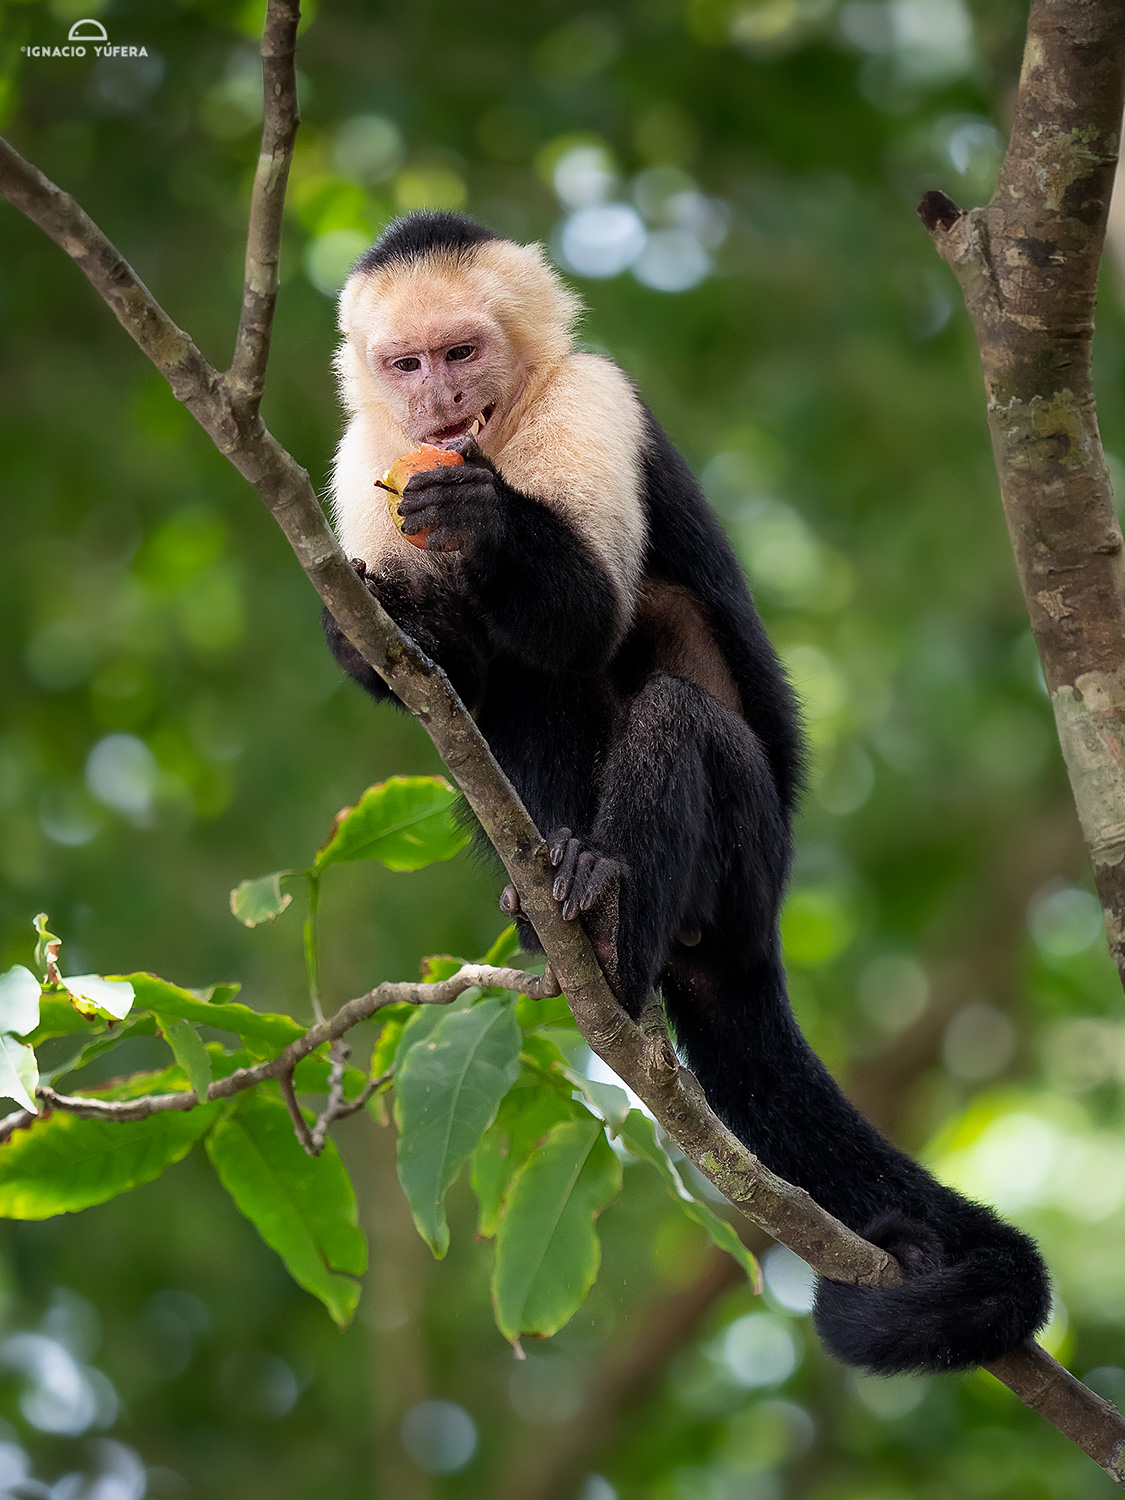 White-faced Capuchin Monkey (Cebus capucinus), eating apple stolen from tourists. Manuel Antonio National Park, Costa Rica